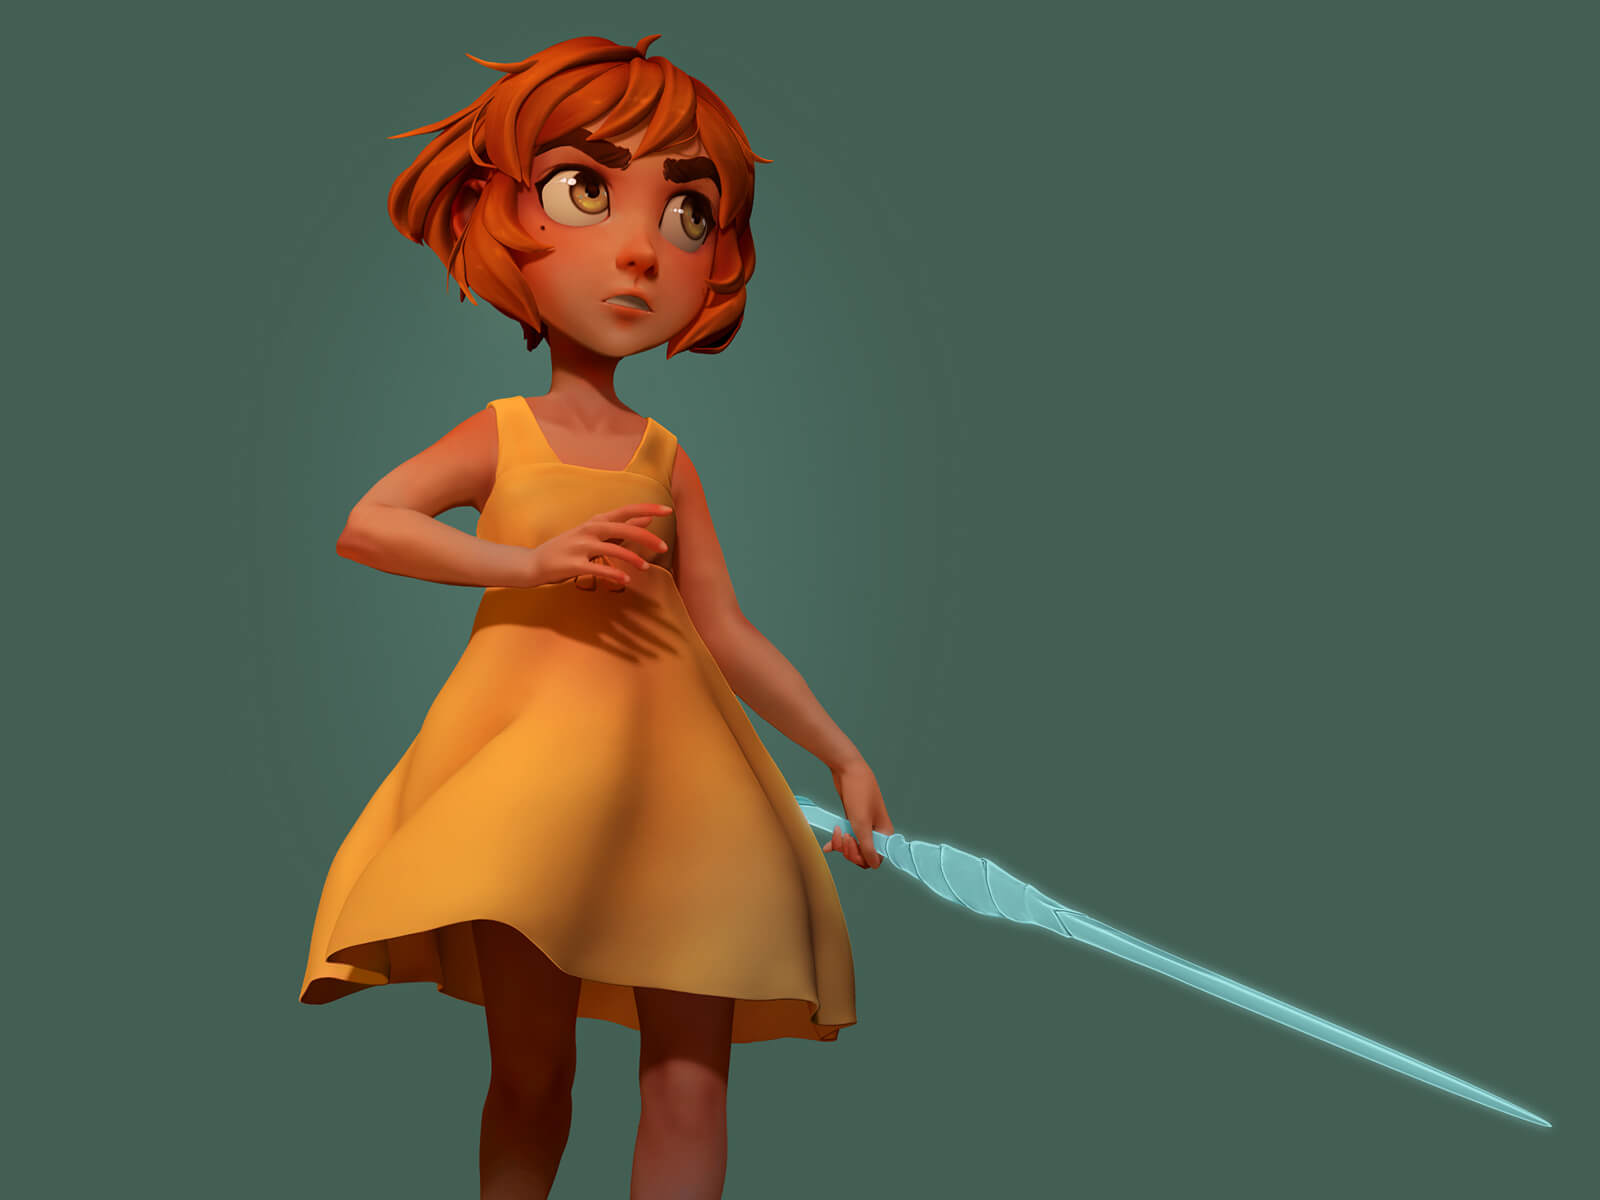 computer-generated 3D model of a small, red-headed girl in a yellow dress carrying a crystal sword